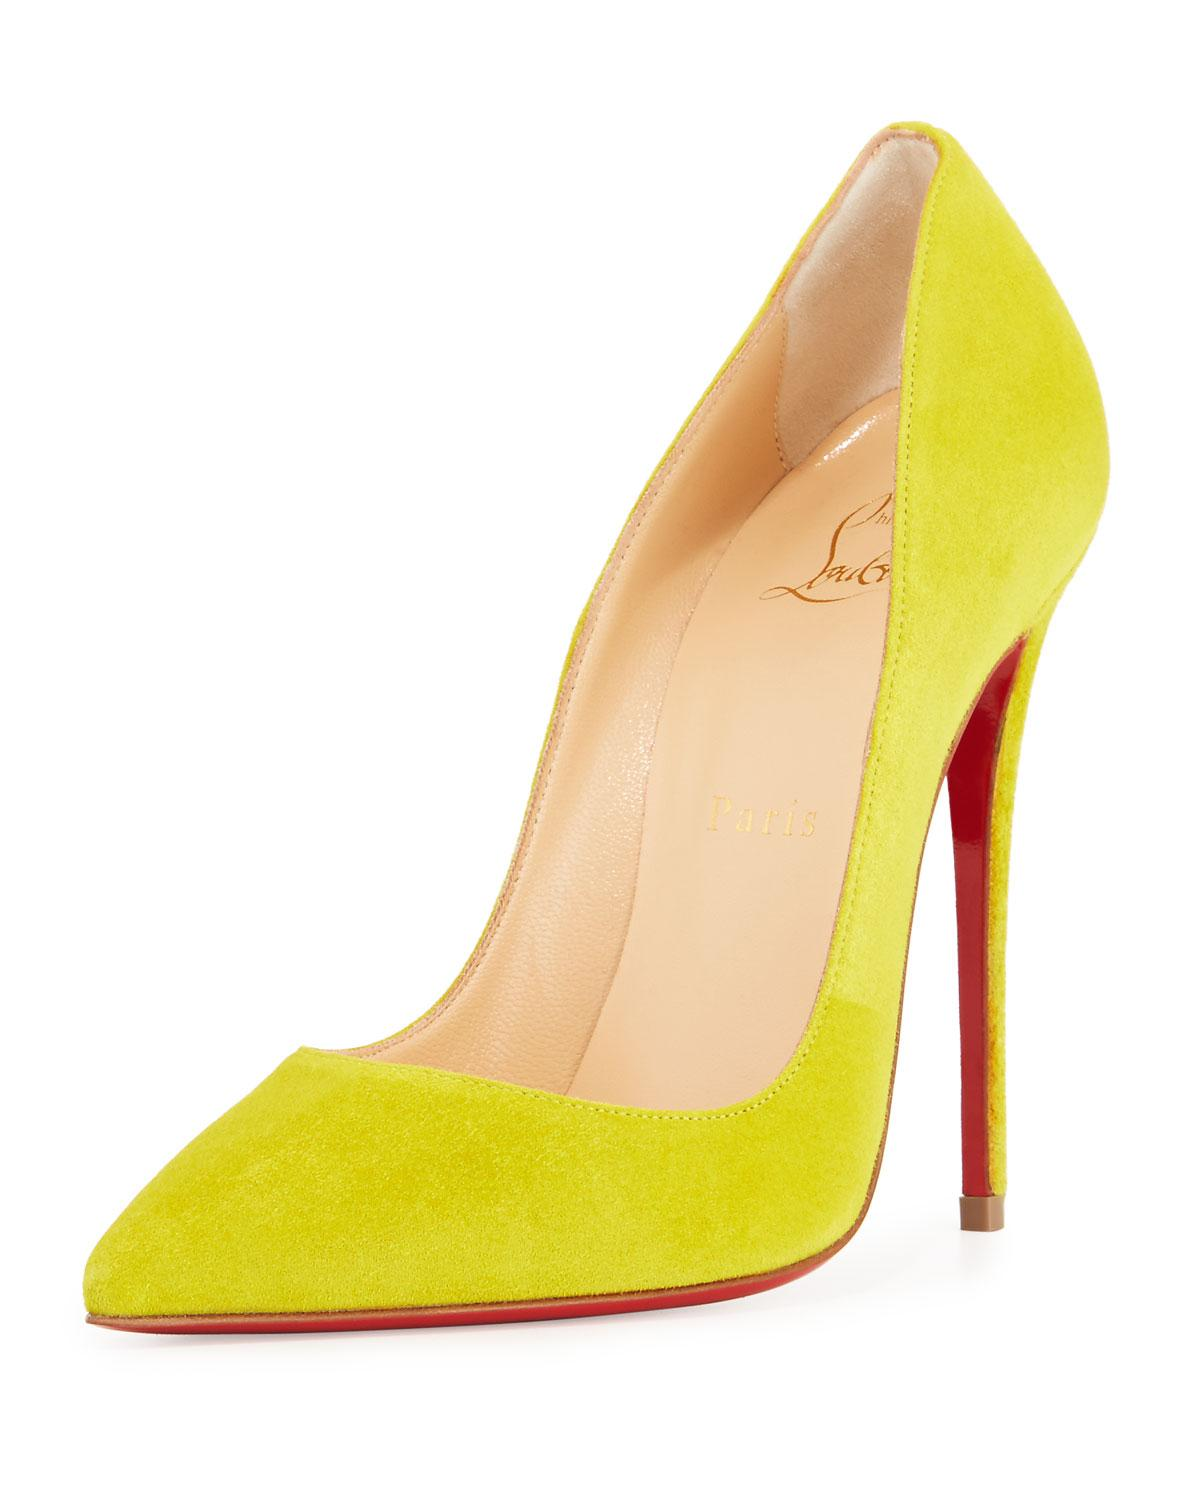 f3f313523a Gallery. Previously sold at: Neiman Marcus · Women's Yellow Heels Women's Christian  Louboutin So Kate ...